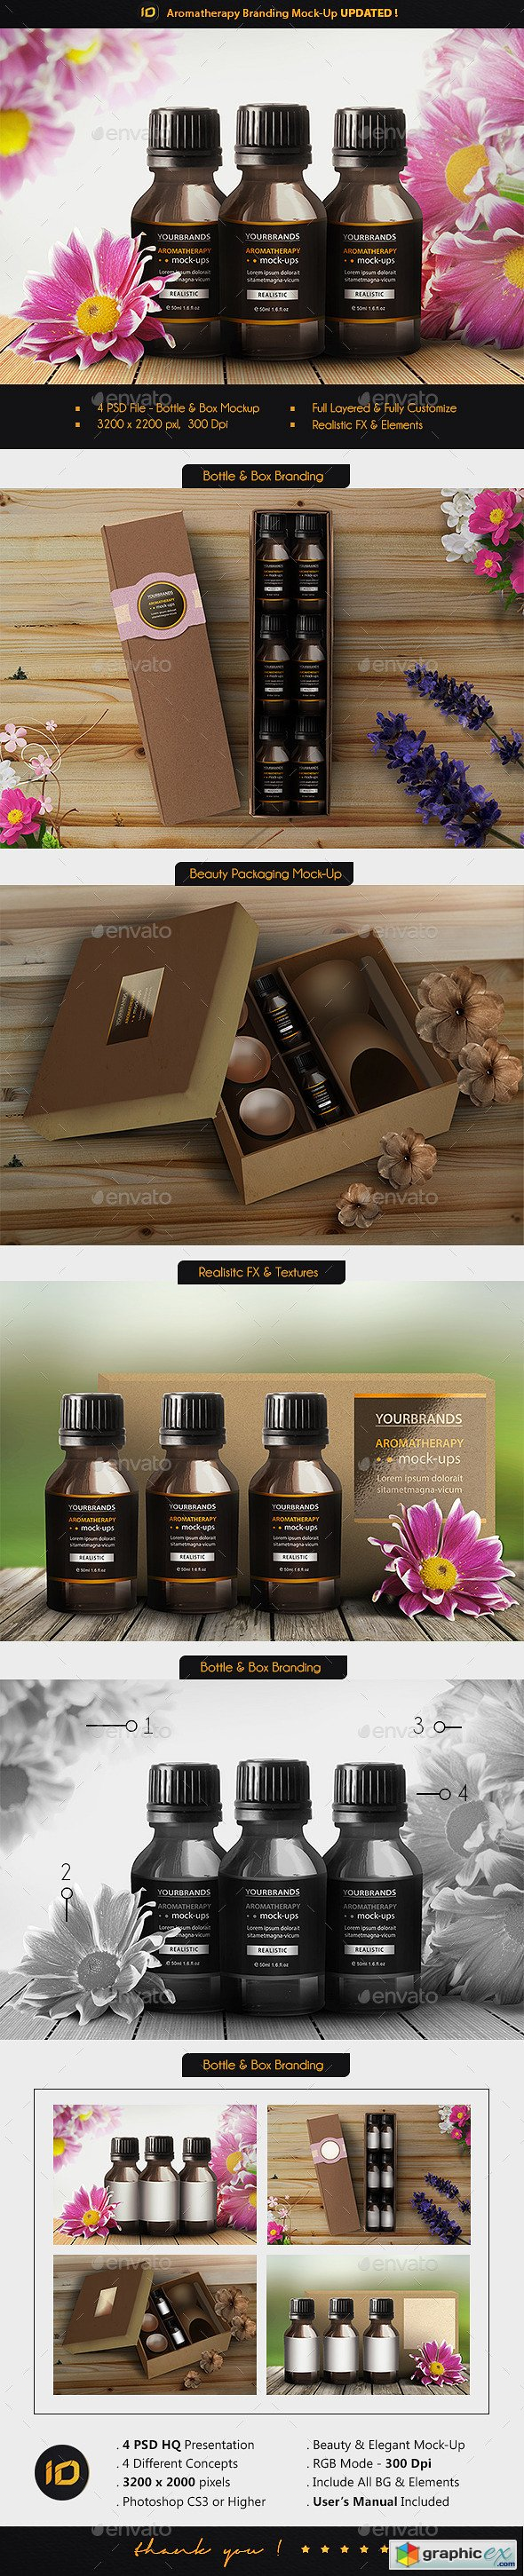 Aromatherapy Bottle Branding Mock-Up